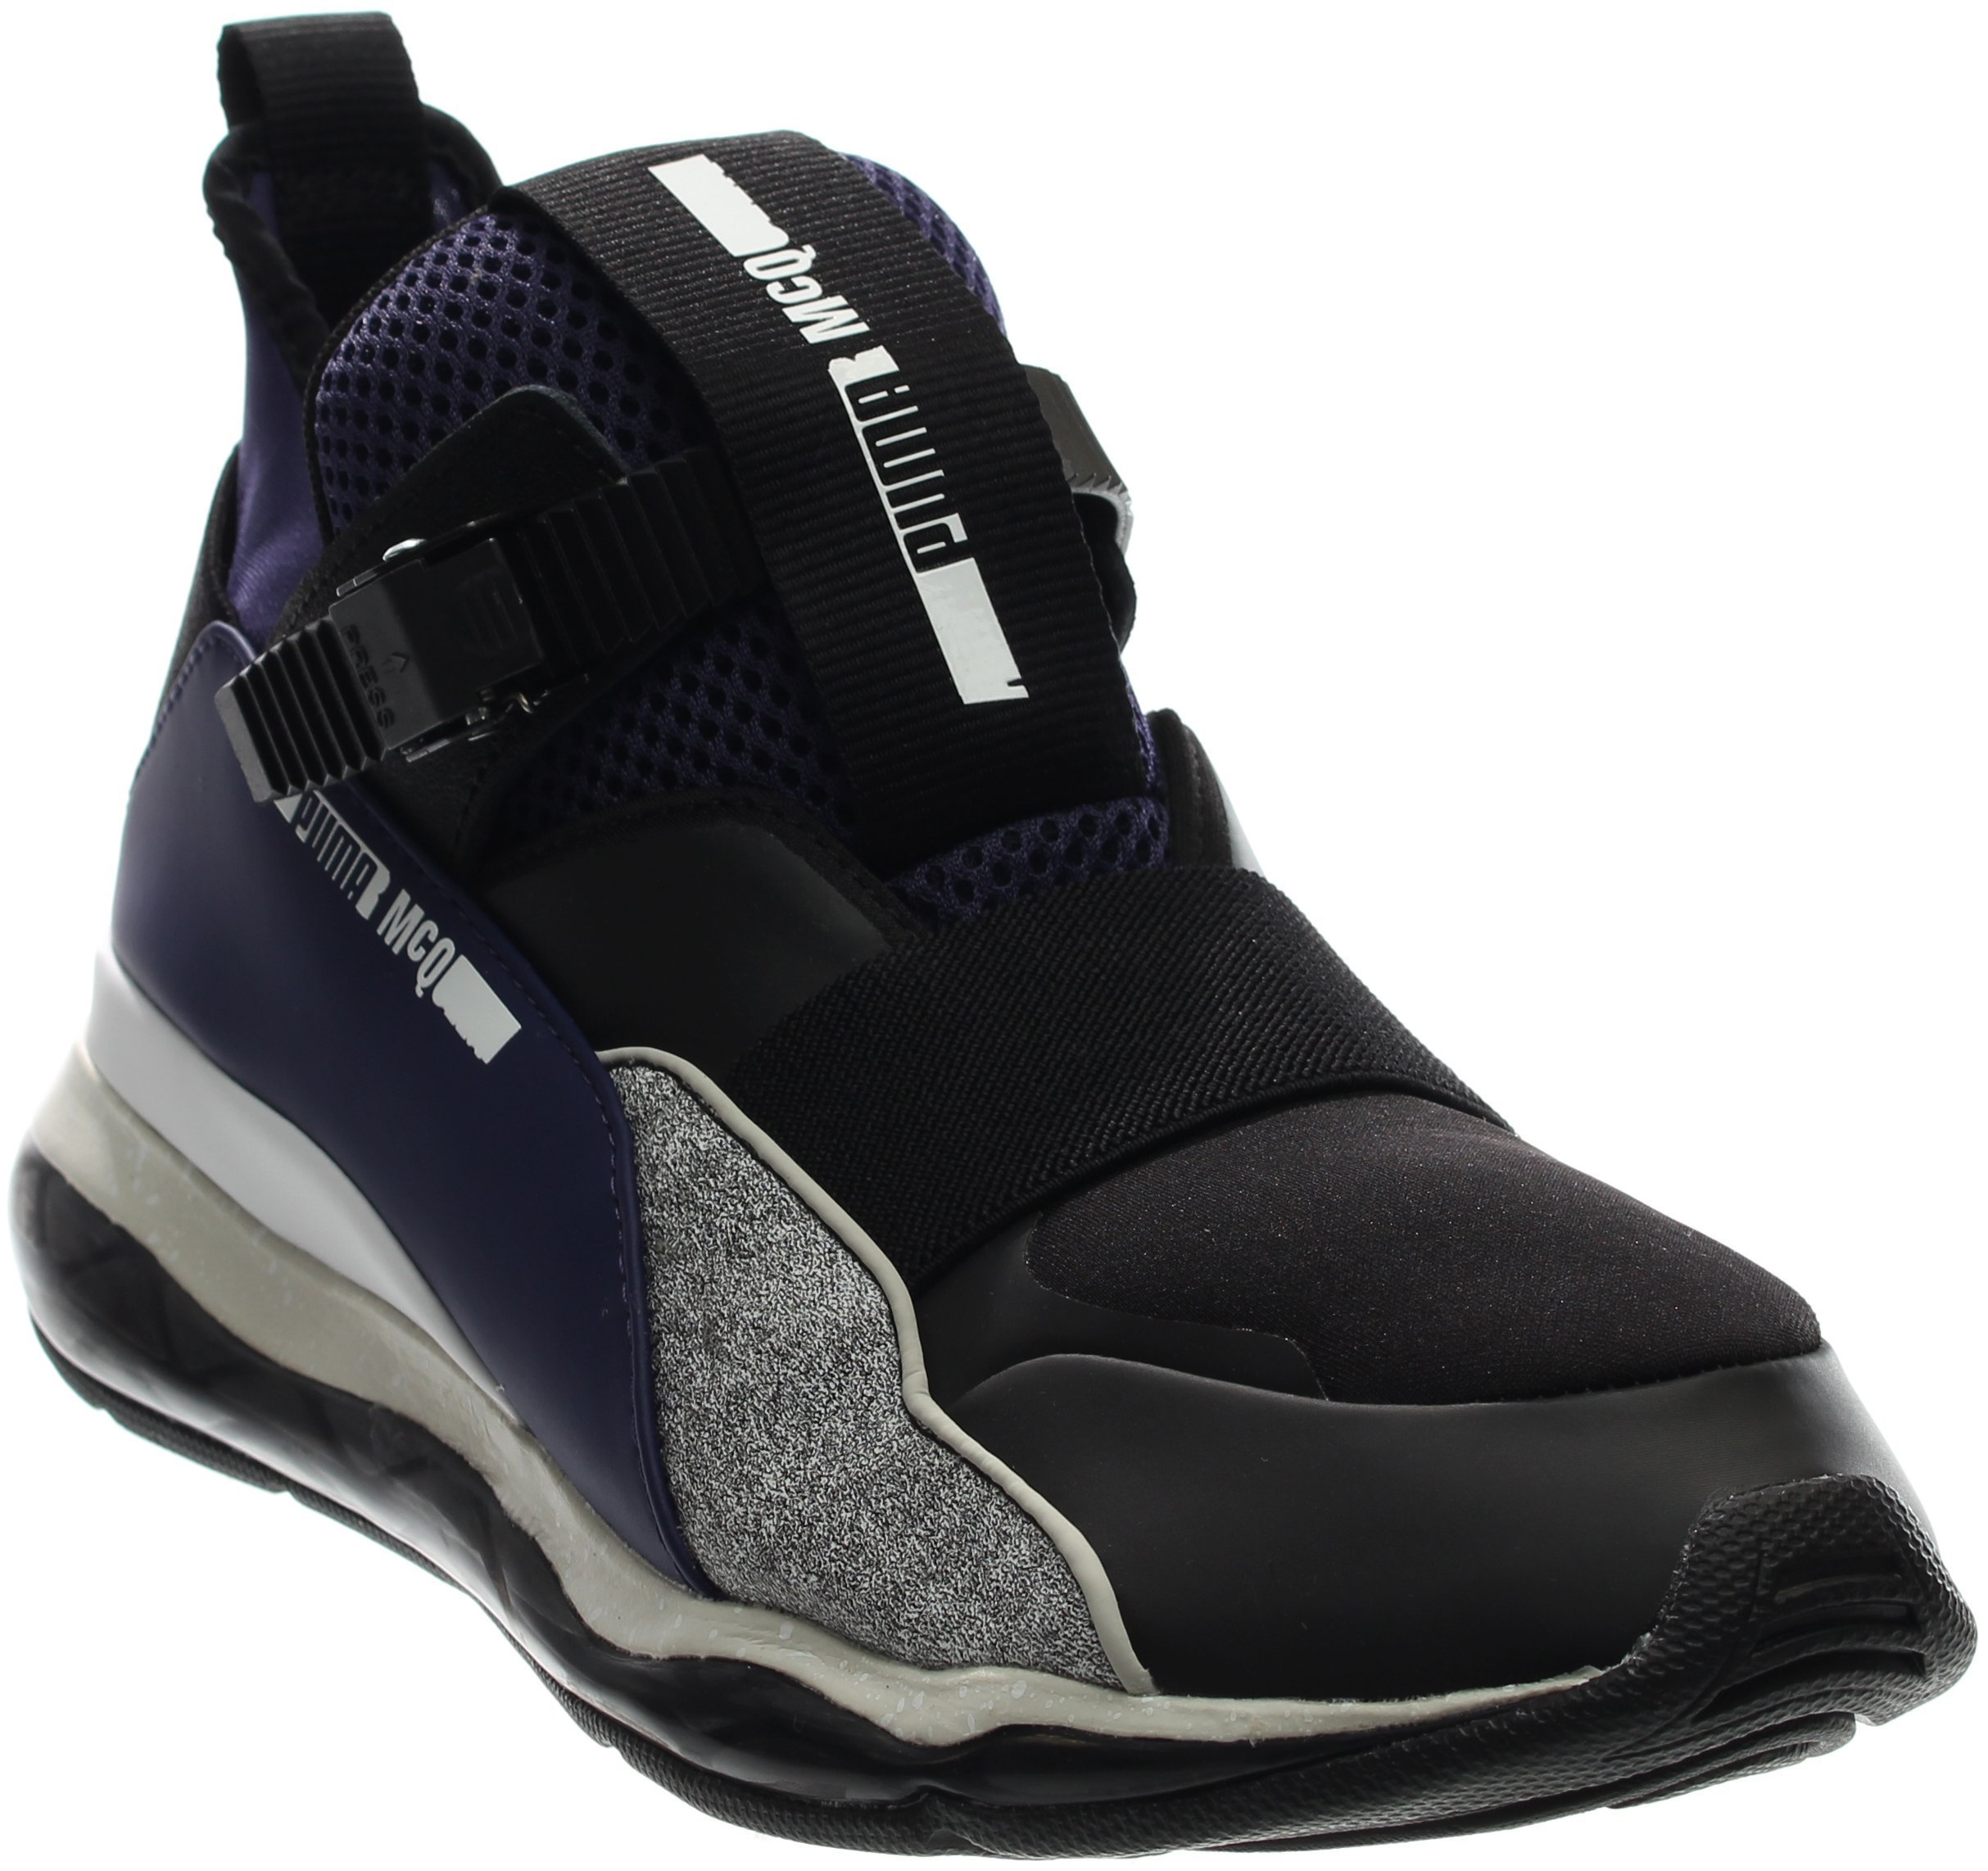 Alexander McQueen By Puma Cell Mid Men US 11 Blue Sneakers